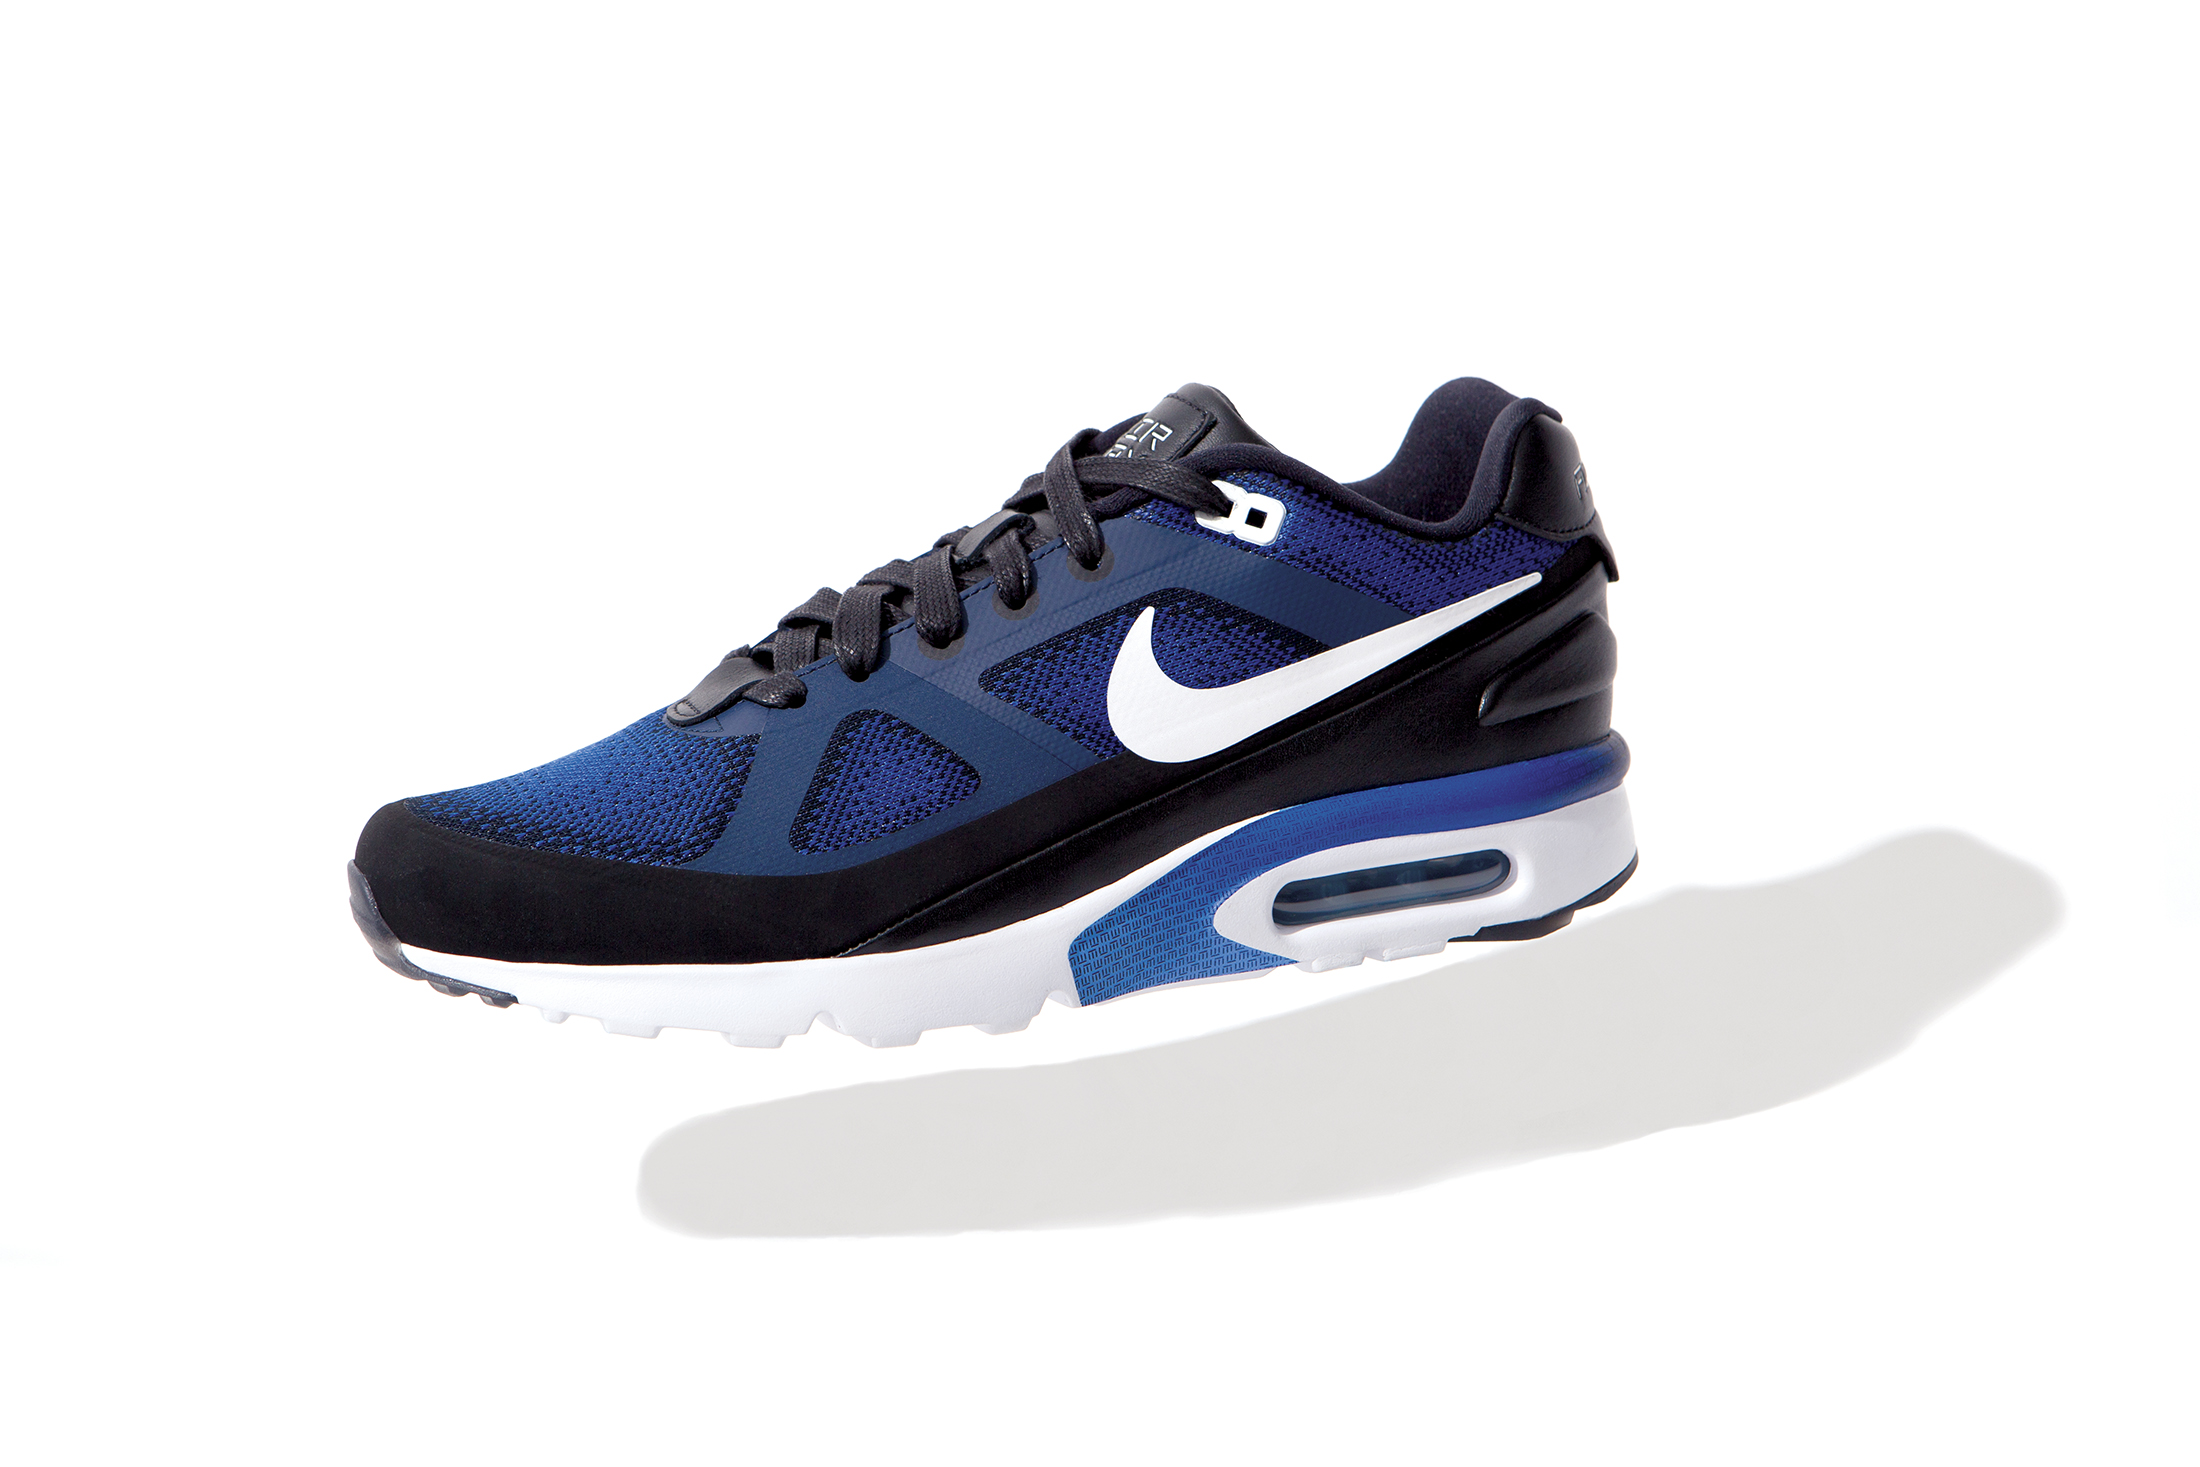 The new Nike Air Max Ultra M, designed by Parker. (Photo: Dani Vernon/Surface)